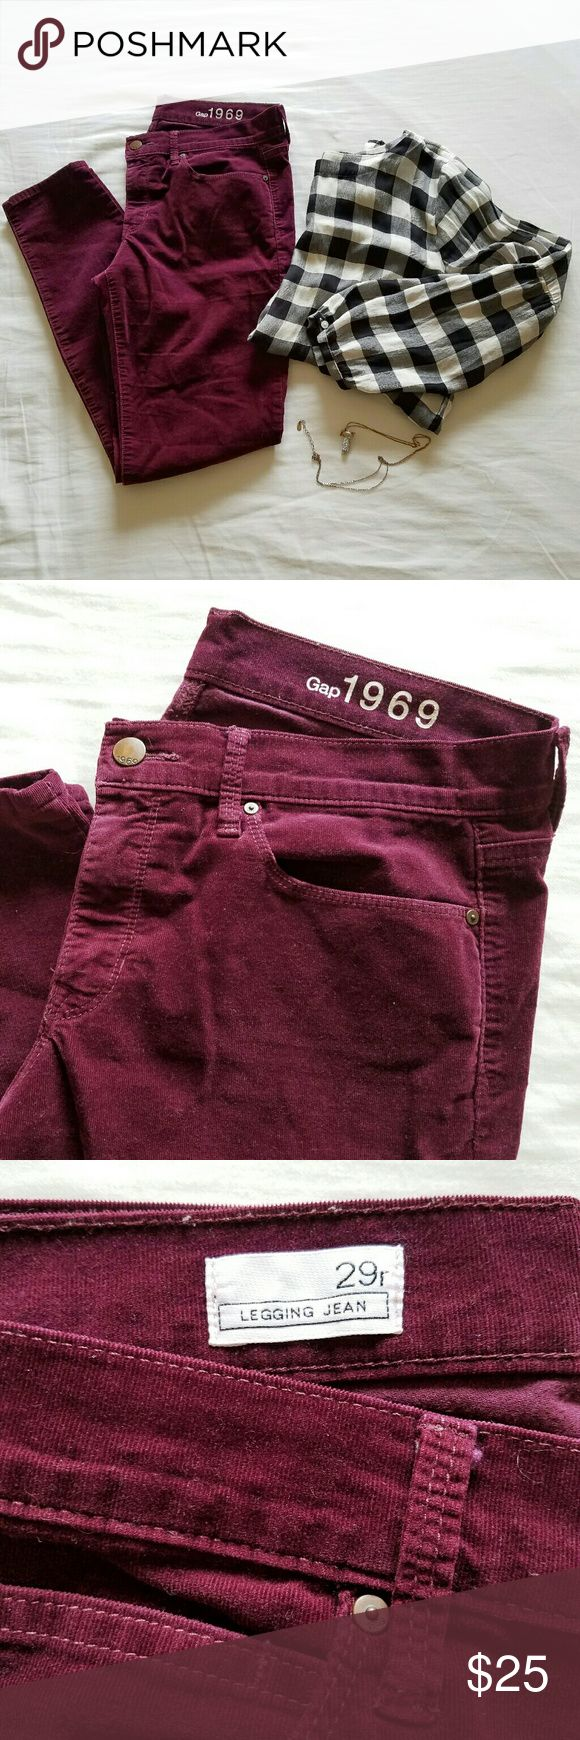 """Gap Burgundy Corduroy Legging Jean Burgundy corduroy legging jean from Gap. 78% cotton, 22% elasterell. Size 29 Regular. MEASUREMENTS LAYING FLAT:  length 37.5""""/ inseam 28"""".  Worn only a handful of times, in good condition! Reasonable offers are very welcomed :) GAP Pants Skinny"""